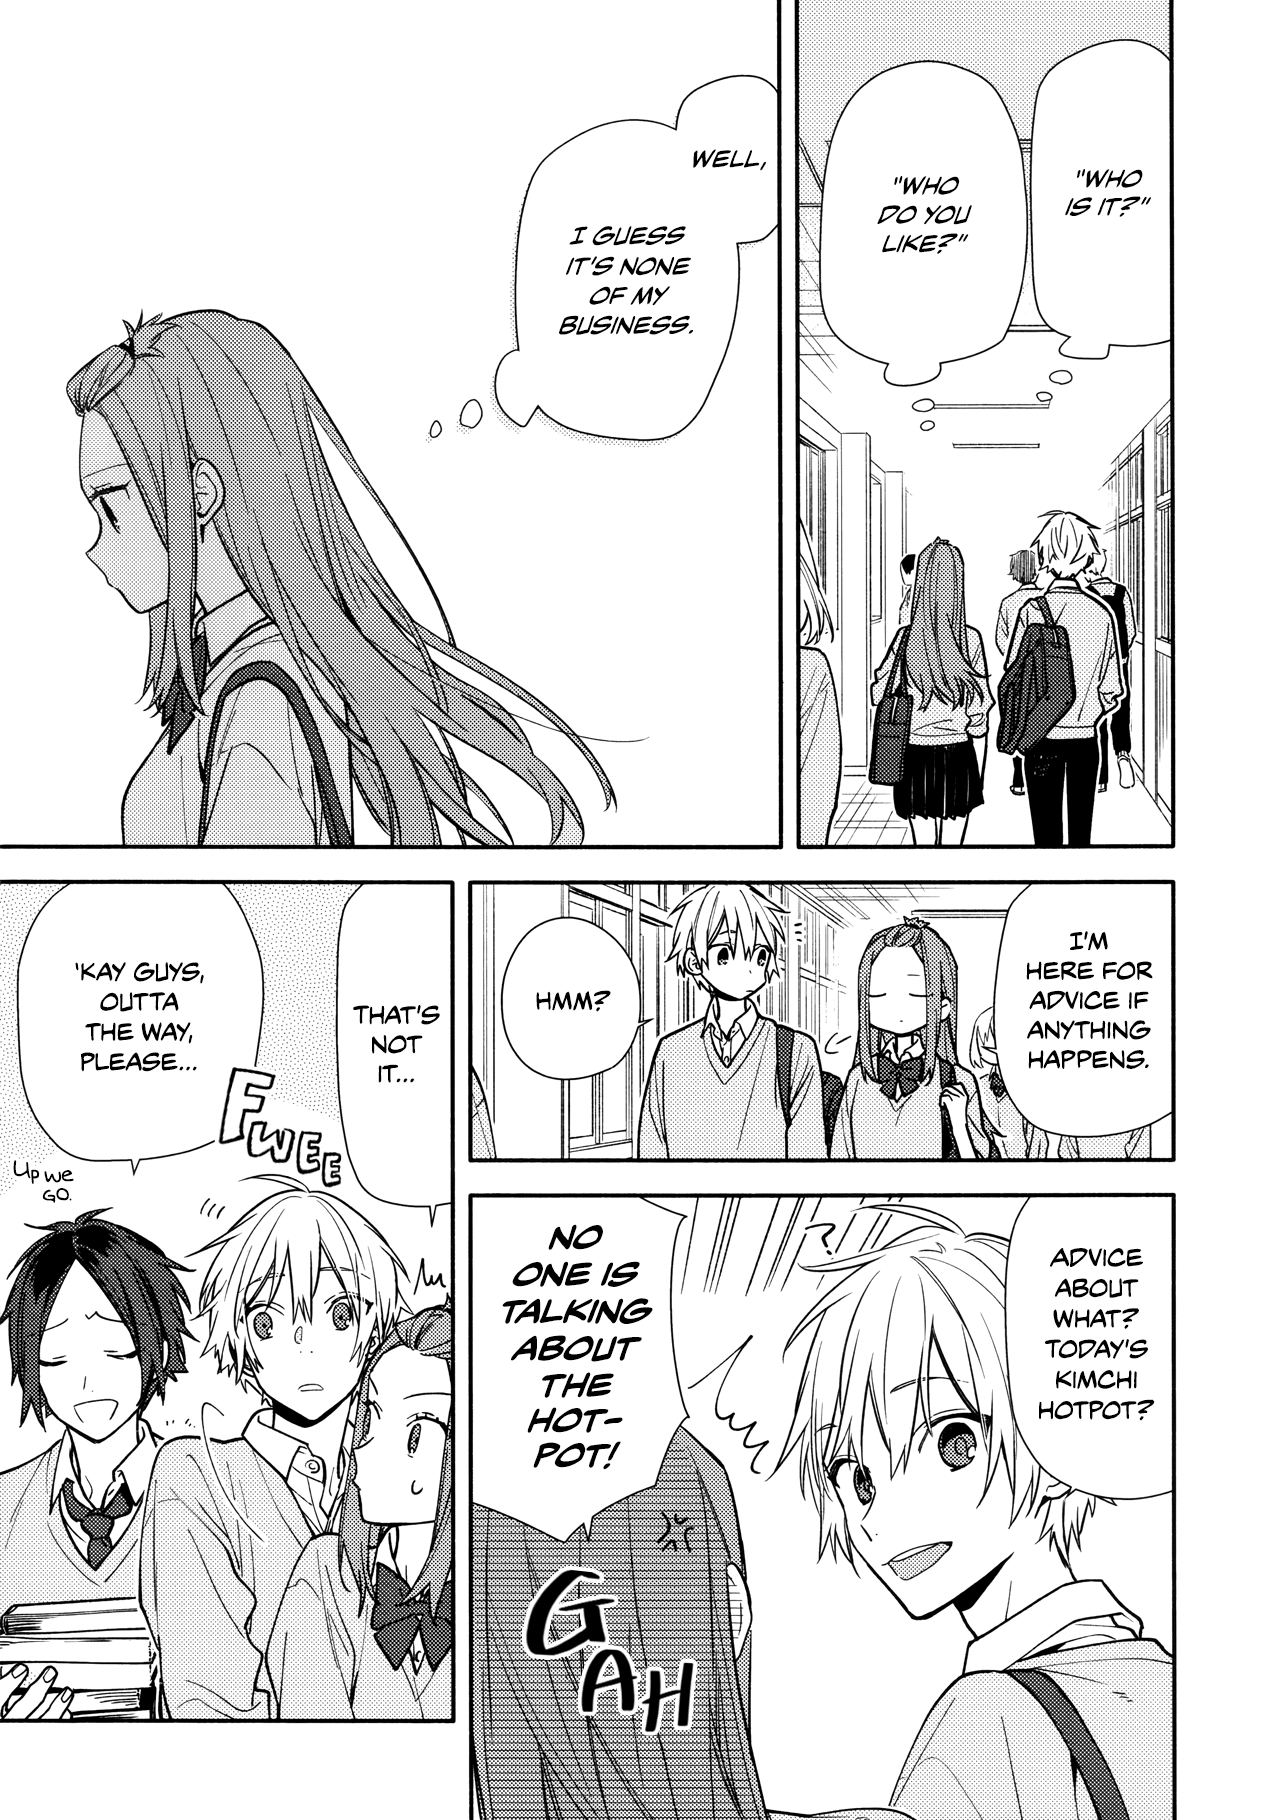 Horimiya,Hori san to Miyamura kun,Horimiya manga,Horimiya anime,manga,Hori san to Miyamura kun manga,Hori san to Miyamura kun anime,read Horimiya,read Hori san to Miyamura kun,chapter,chapters,webcomic